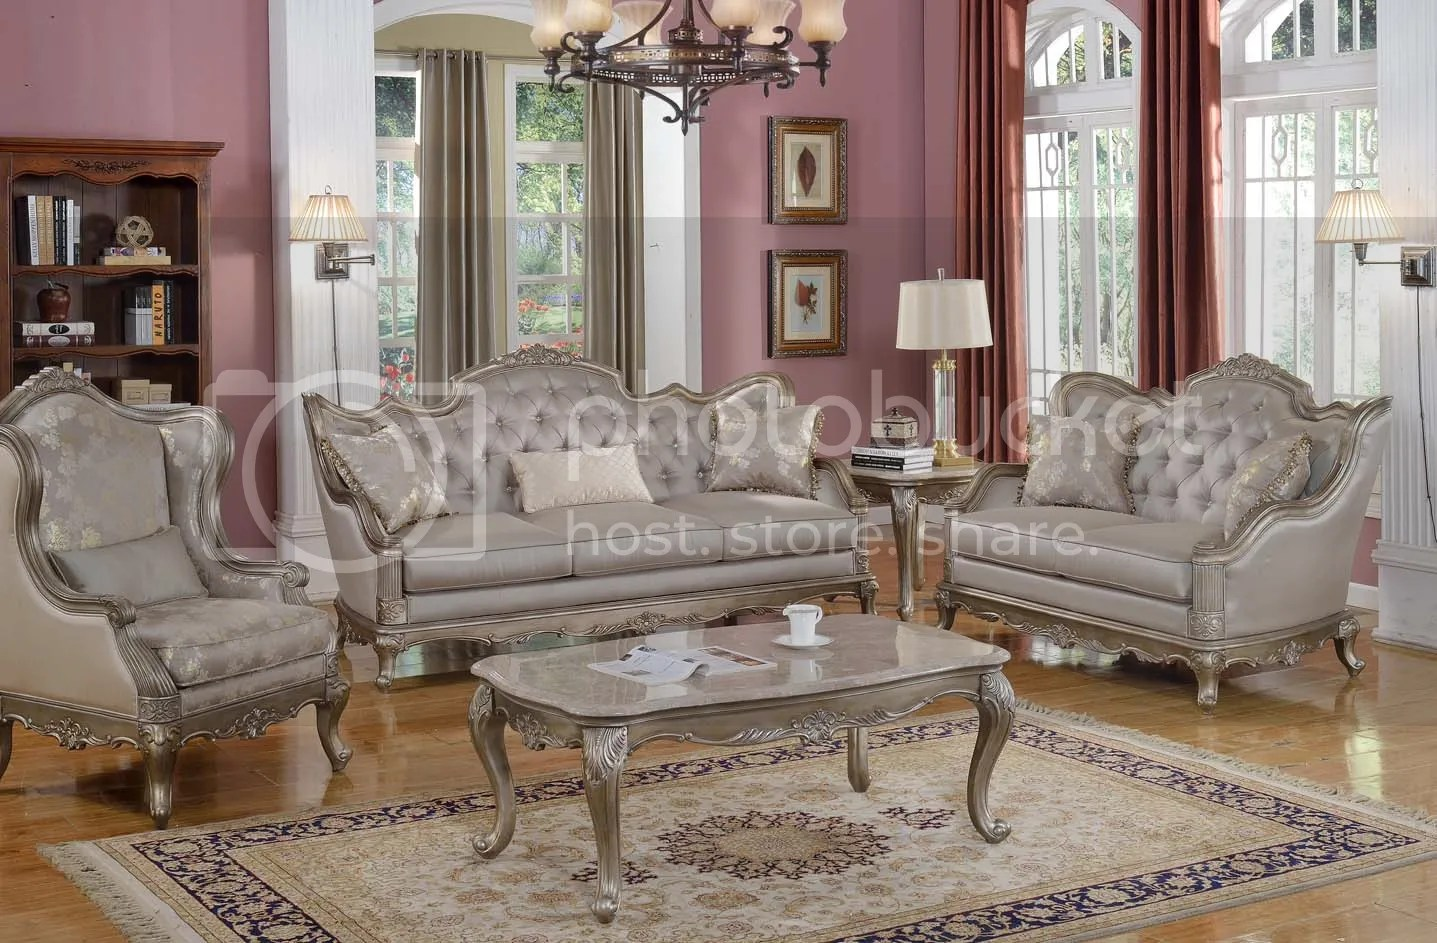 living room loveseat broyhill furniture elegant traditional antique style sofa formal details about